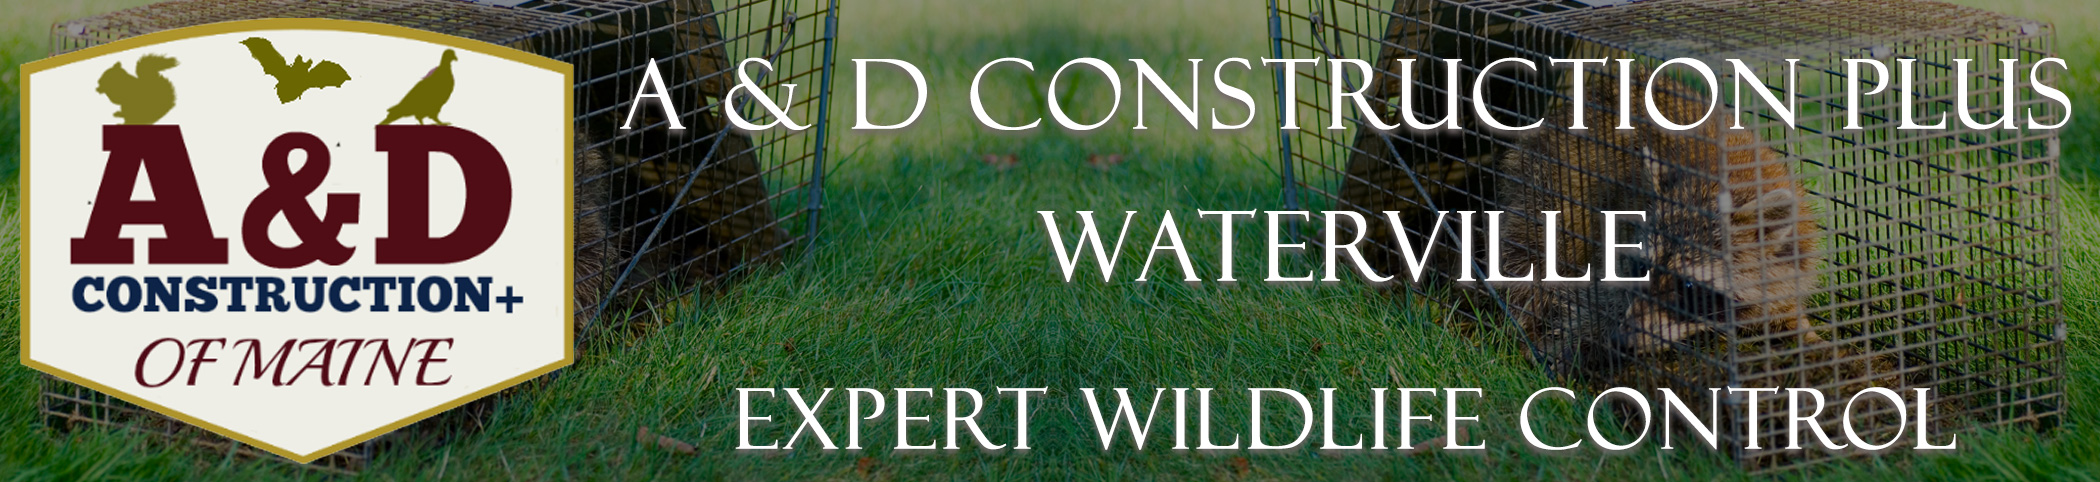 A AND D Construction PLUS Bat Removal Waterville Maine